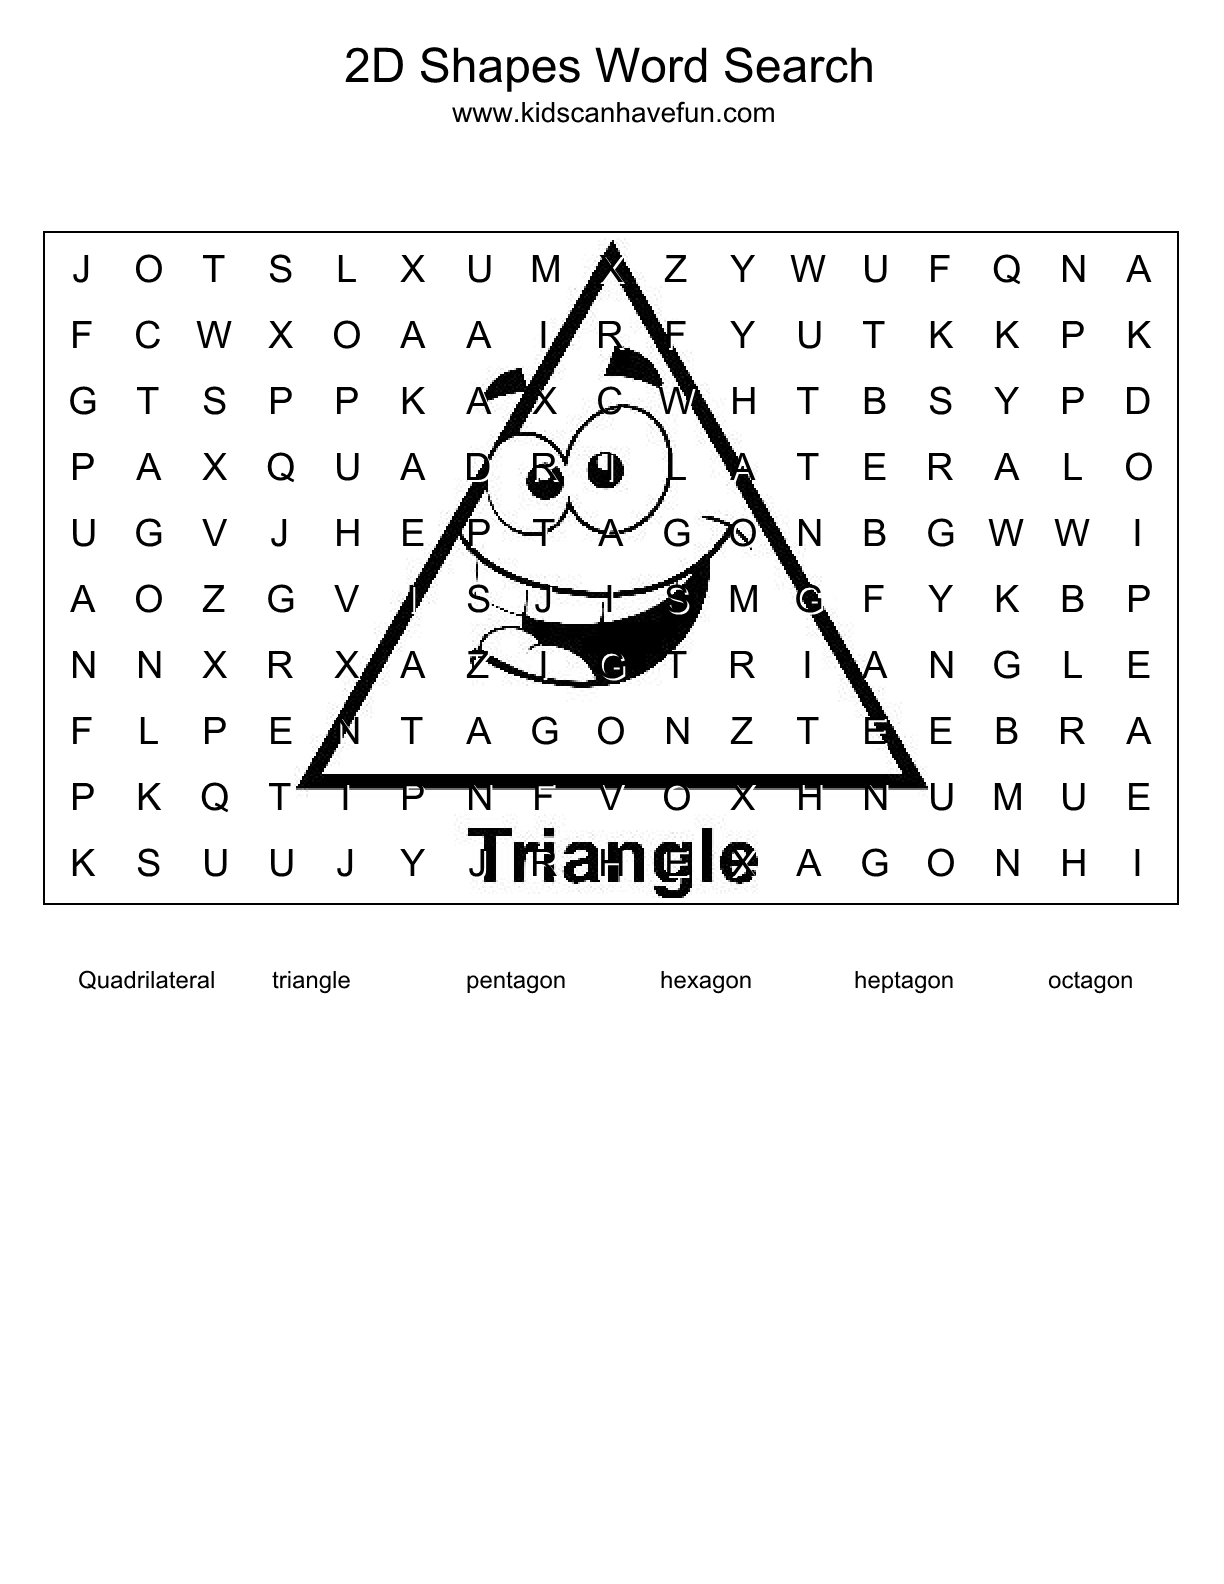 2d Shapes Word Search Puzzle Dscanhavefun Word Search Puzzle Shapes